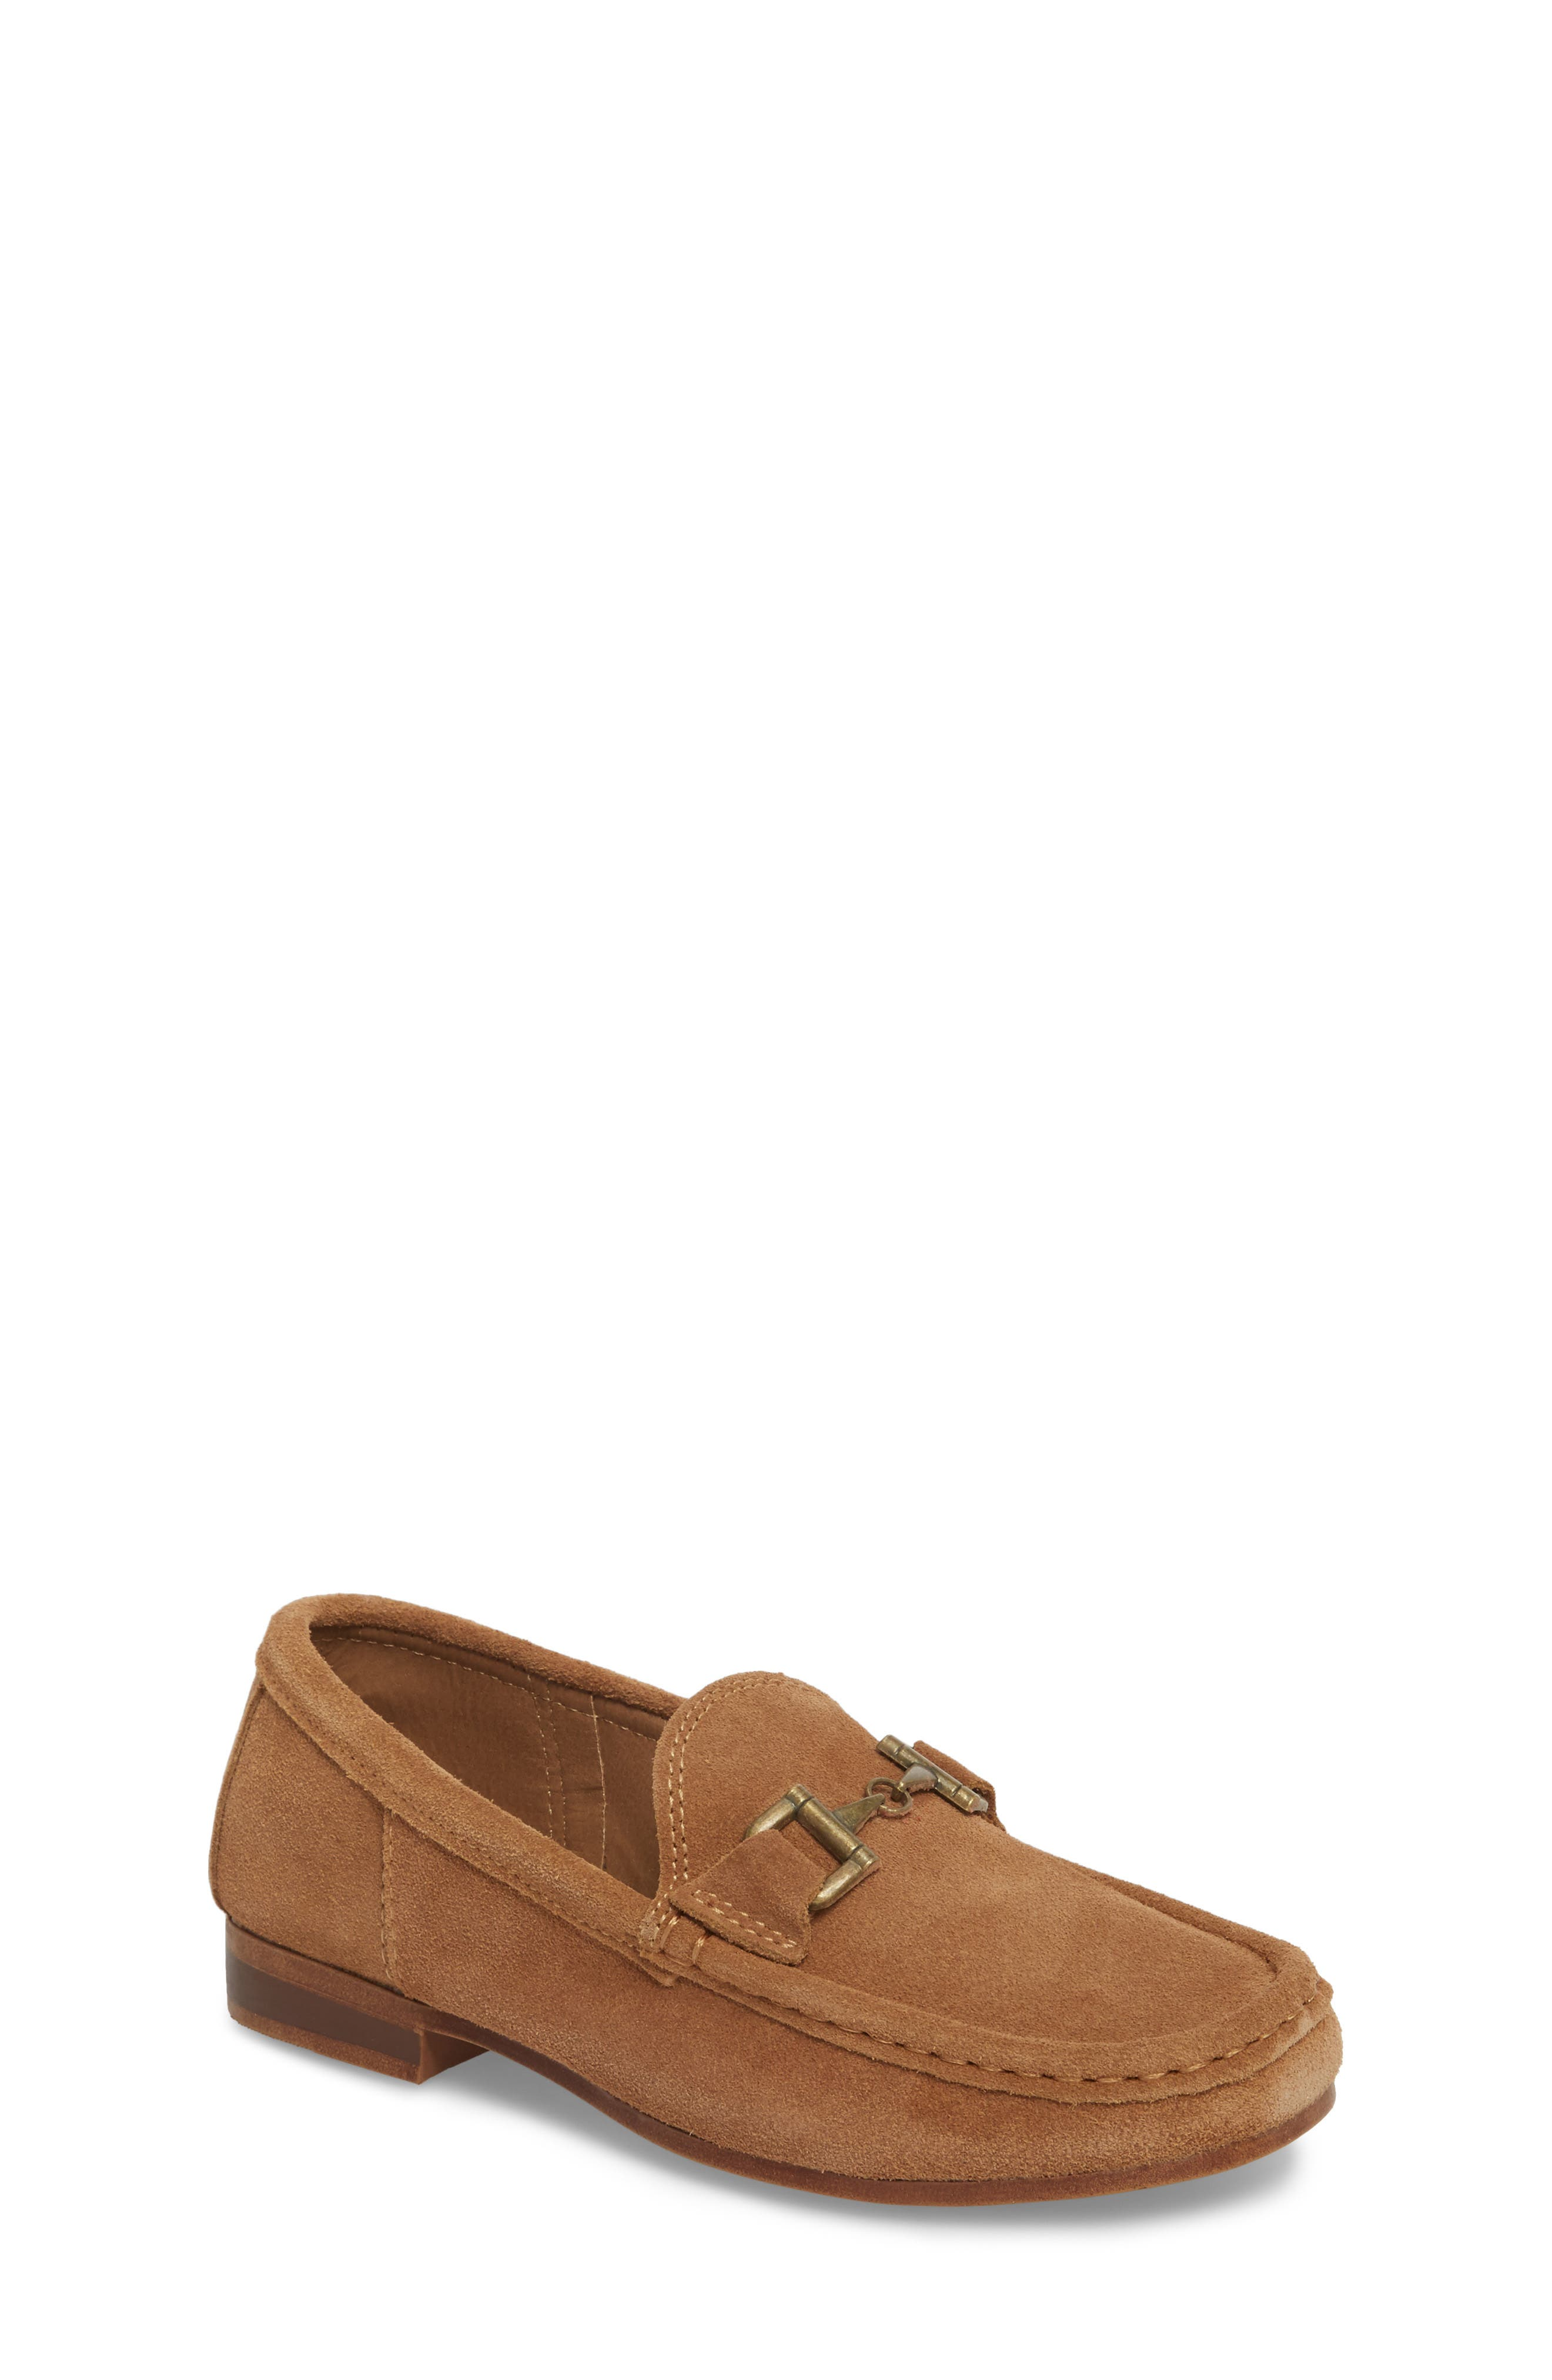 Blugo Loafer,                             Main thumbnail 1, color,                             200